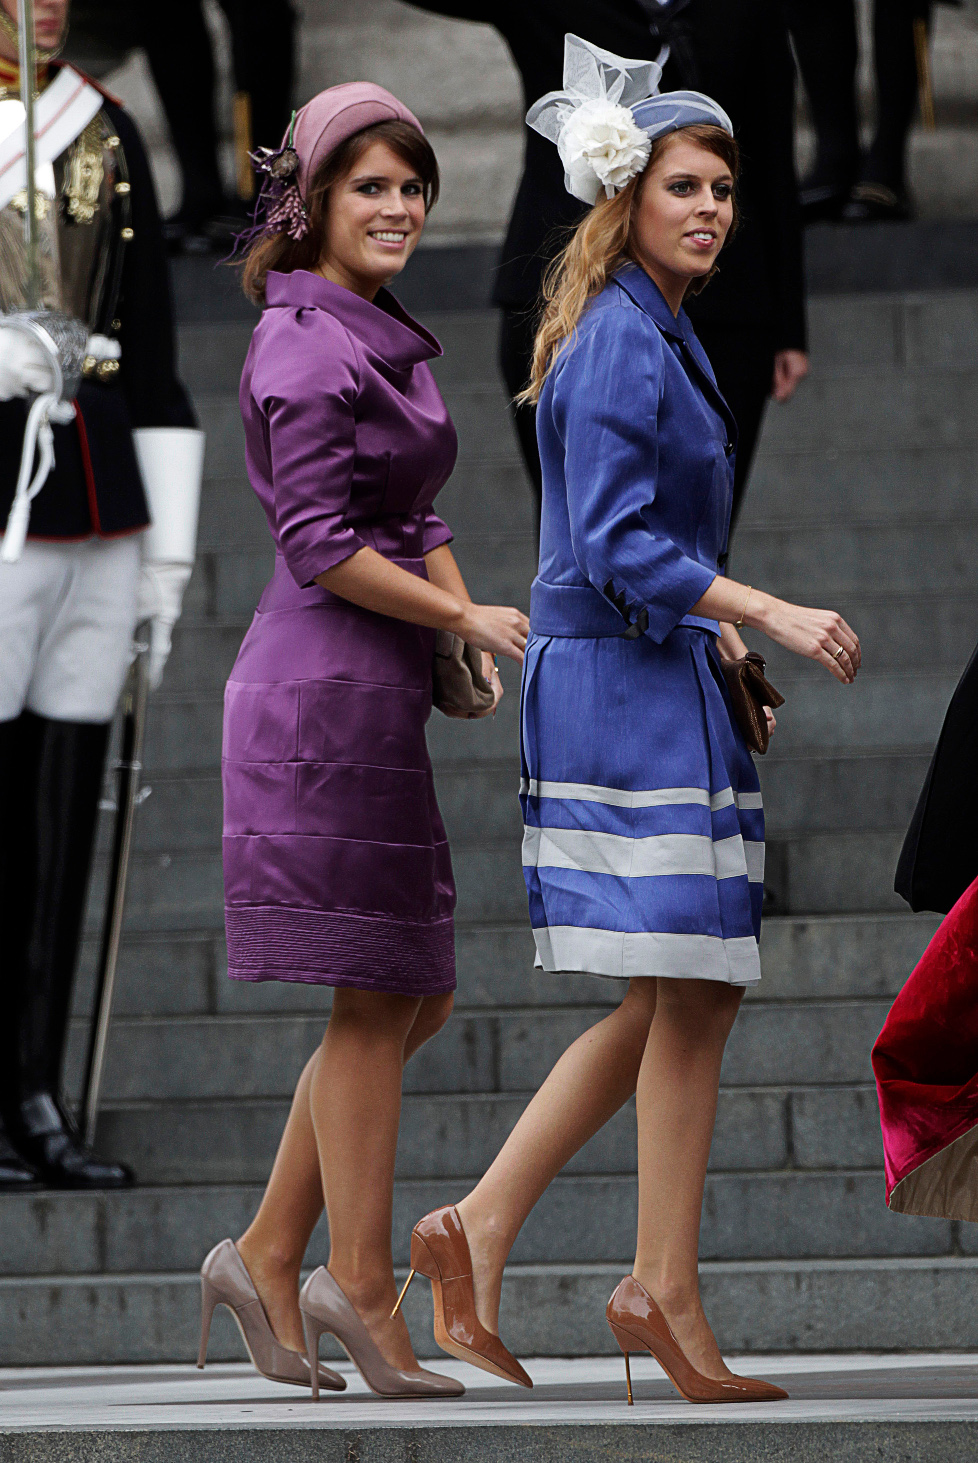 Princess Eugenie (L) and Princess Beatrice arrive for a service of thanksgiving to mark Queen Elizabeth's Diamond Jubilee at St Pauls Cathedral in central London June 5, 2012. REUTERS/David Moir (BRITAIN - Tags: ROYALS ENTERTAINMENT) - LM1E8650SYU01